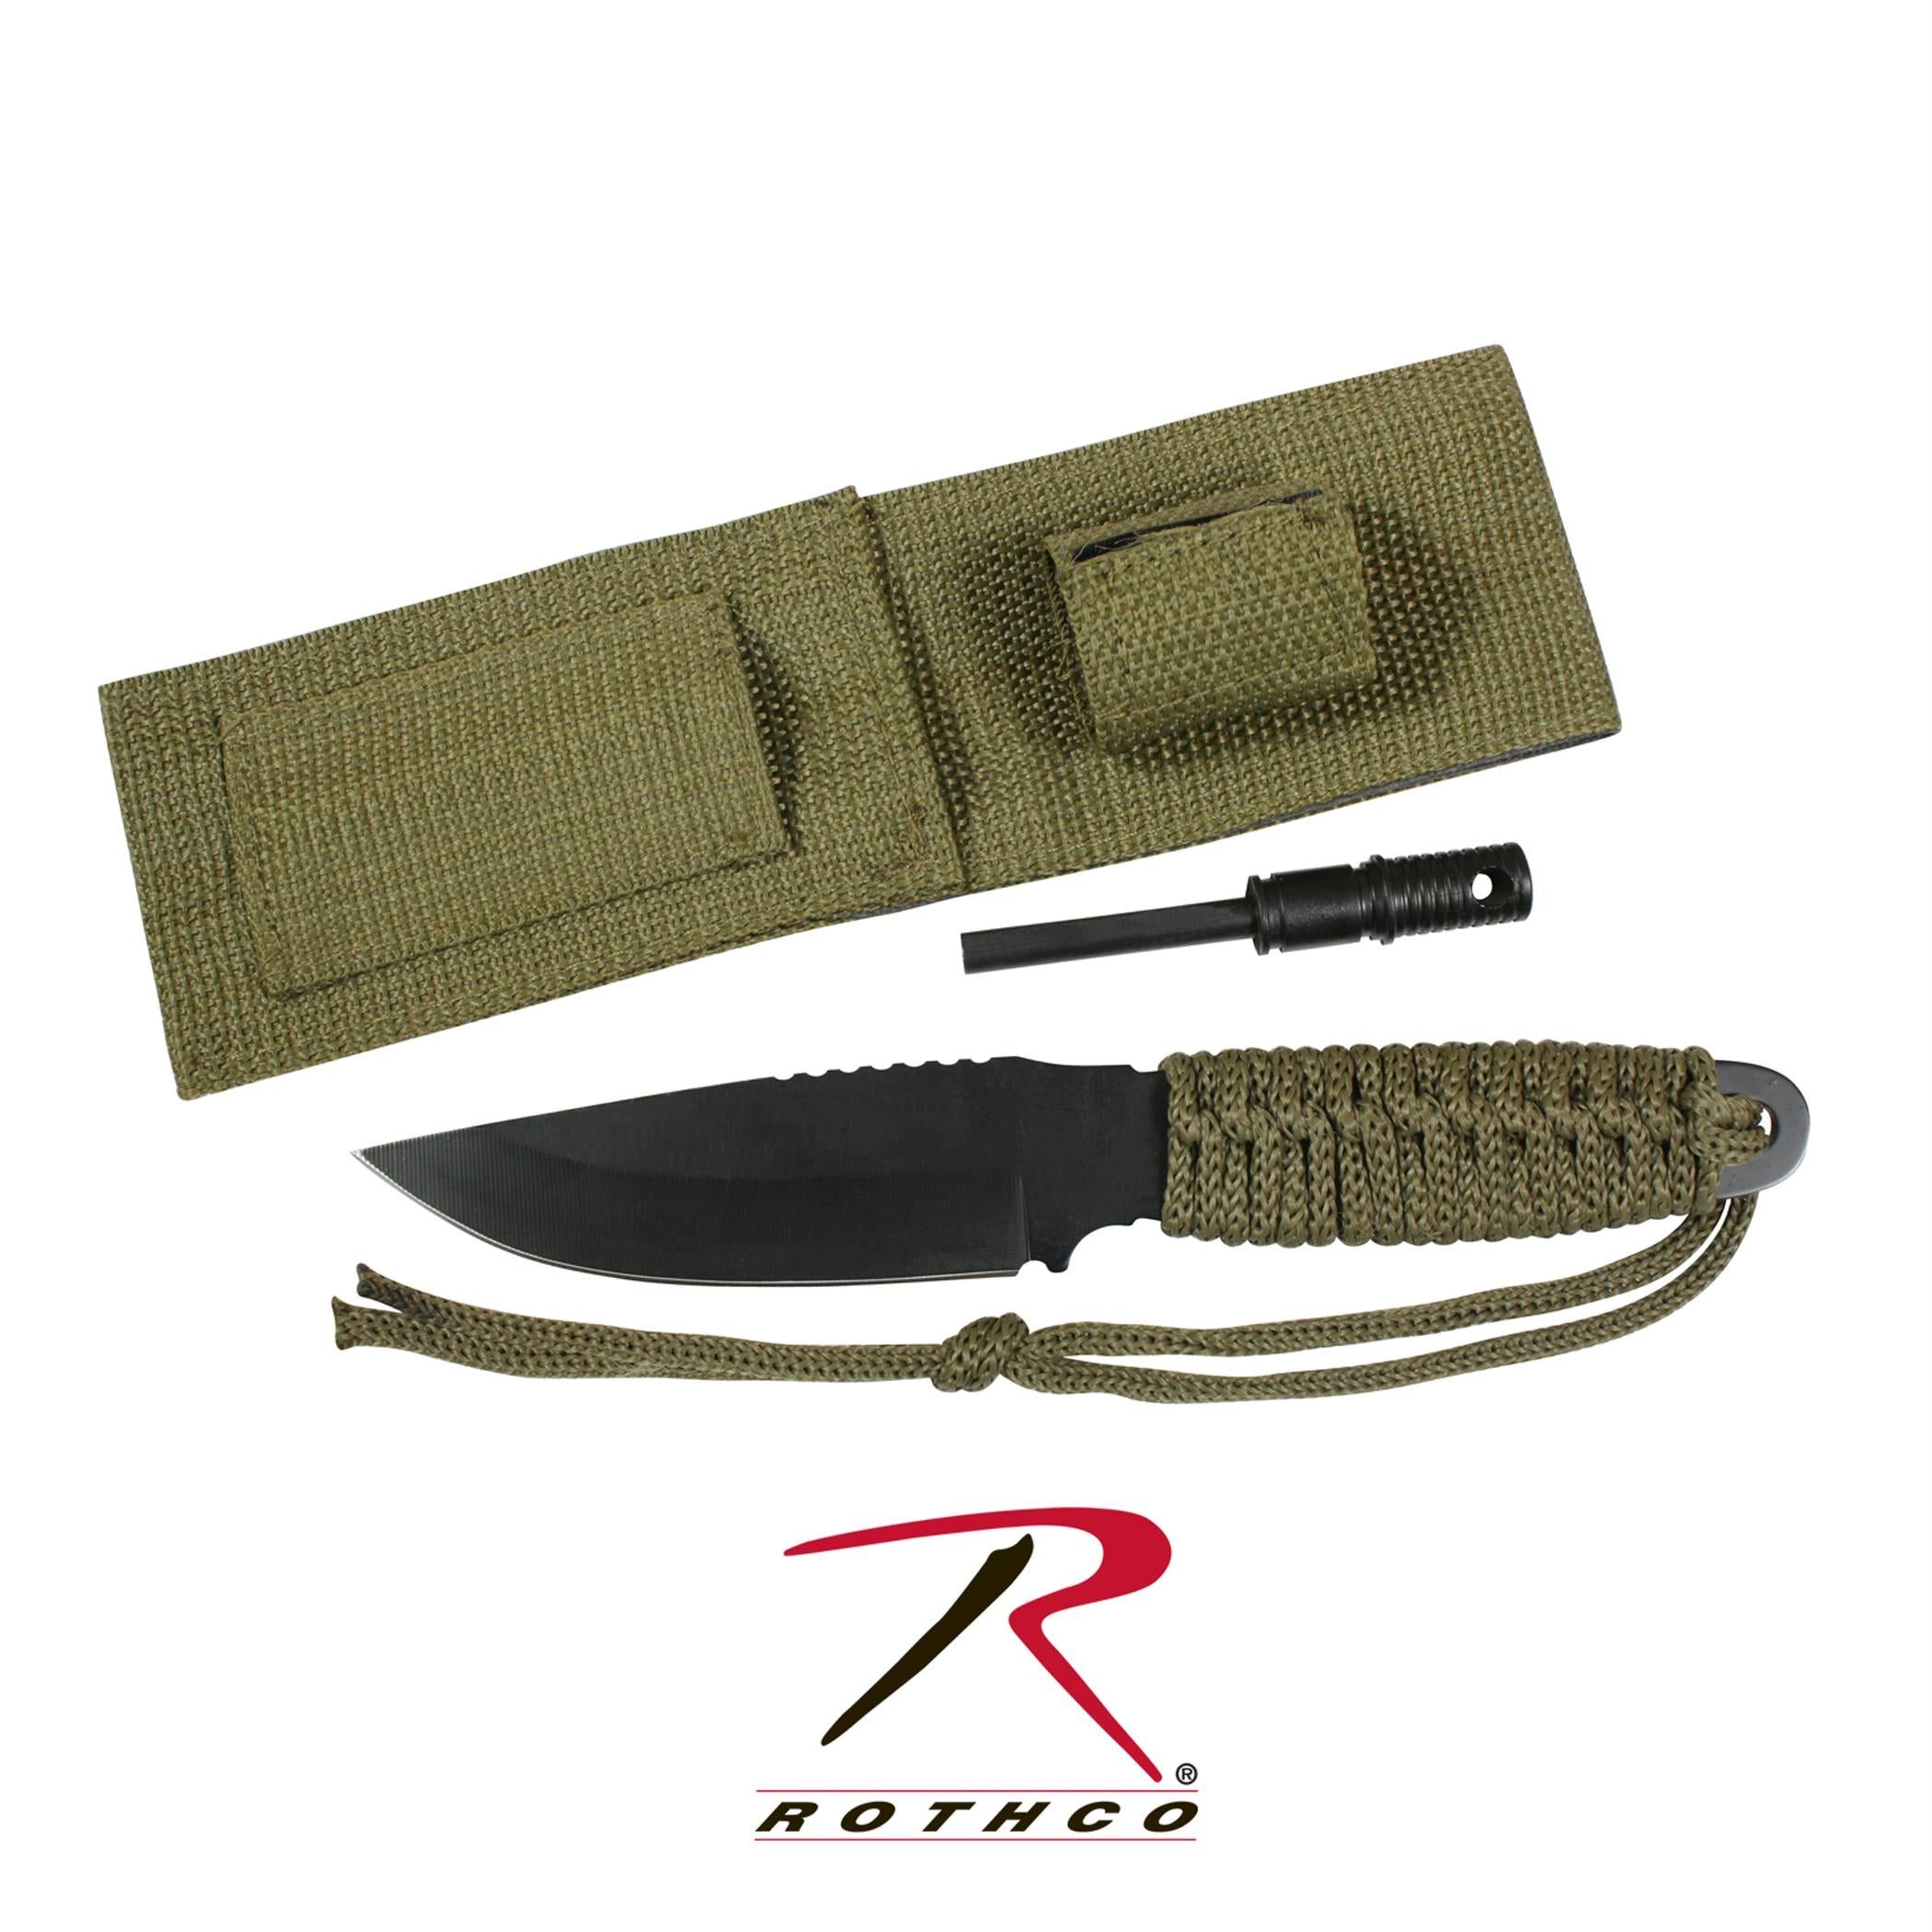 Rothco Paracord Knife With Fire Starter - Olive Drab